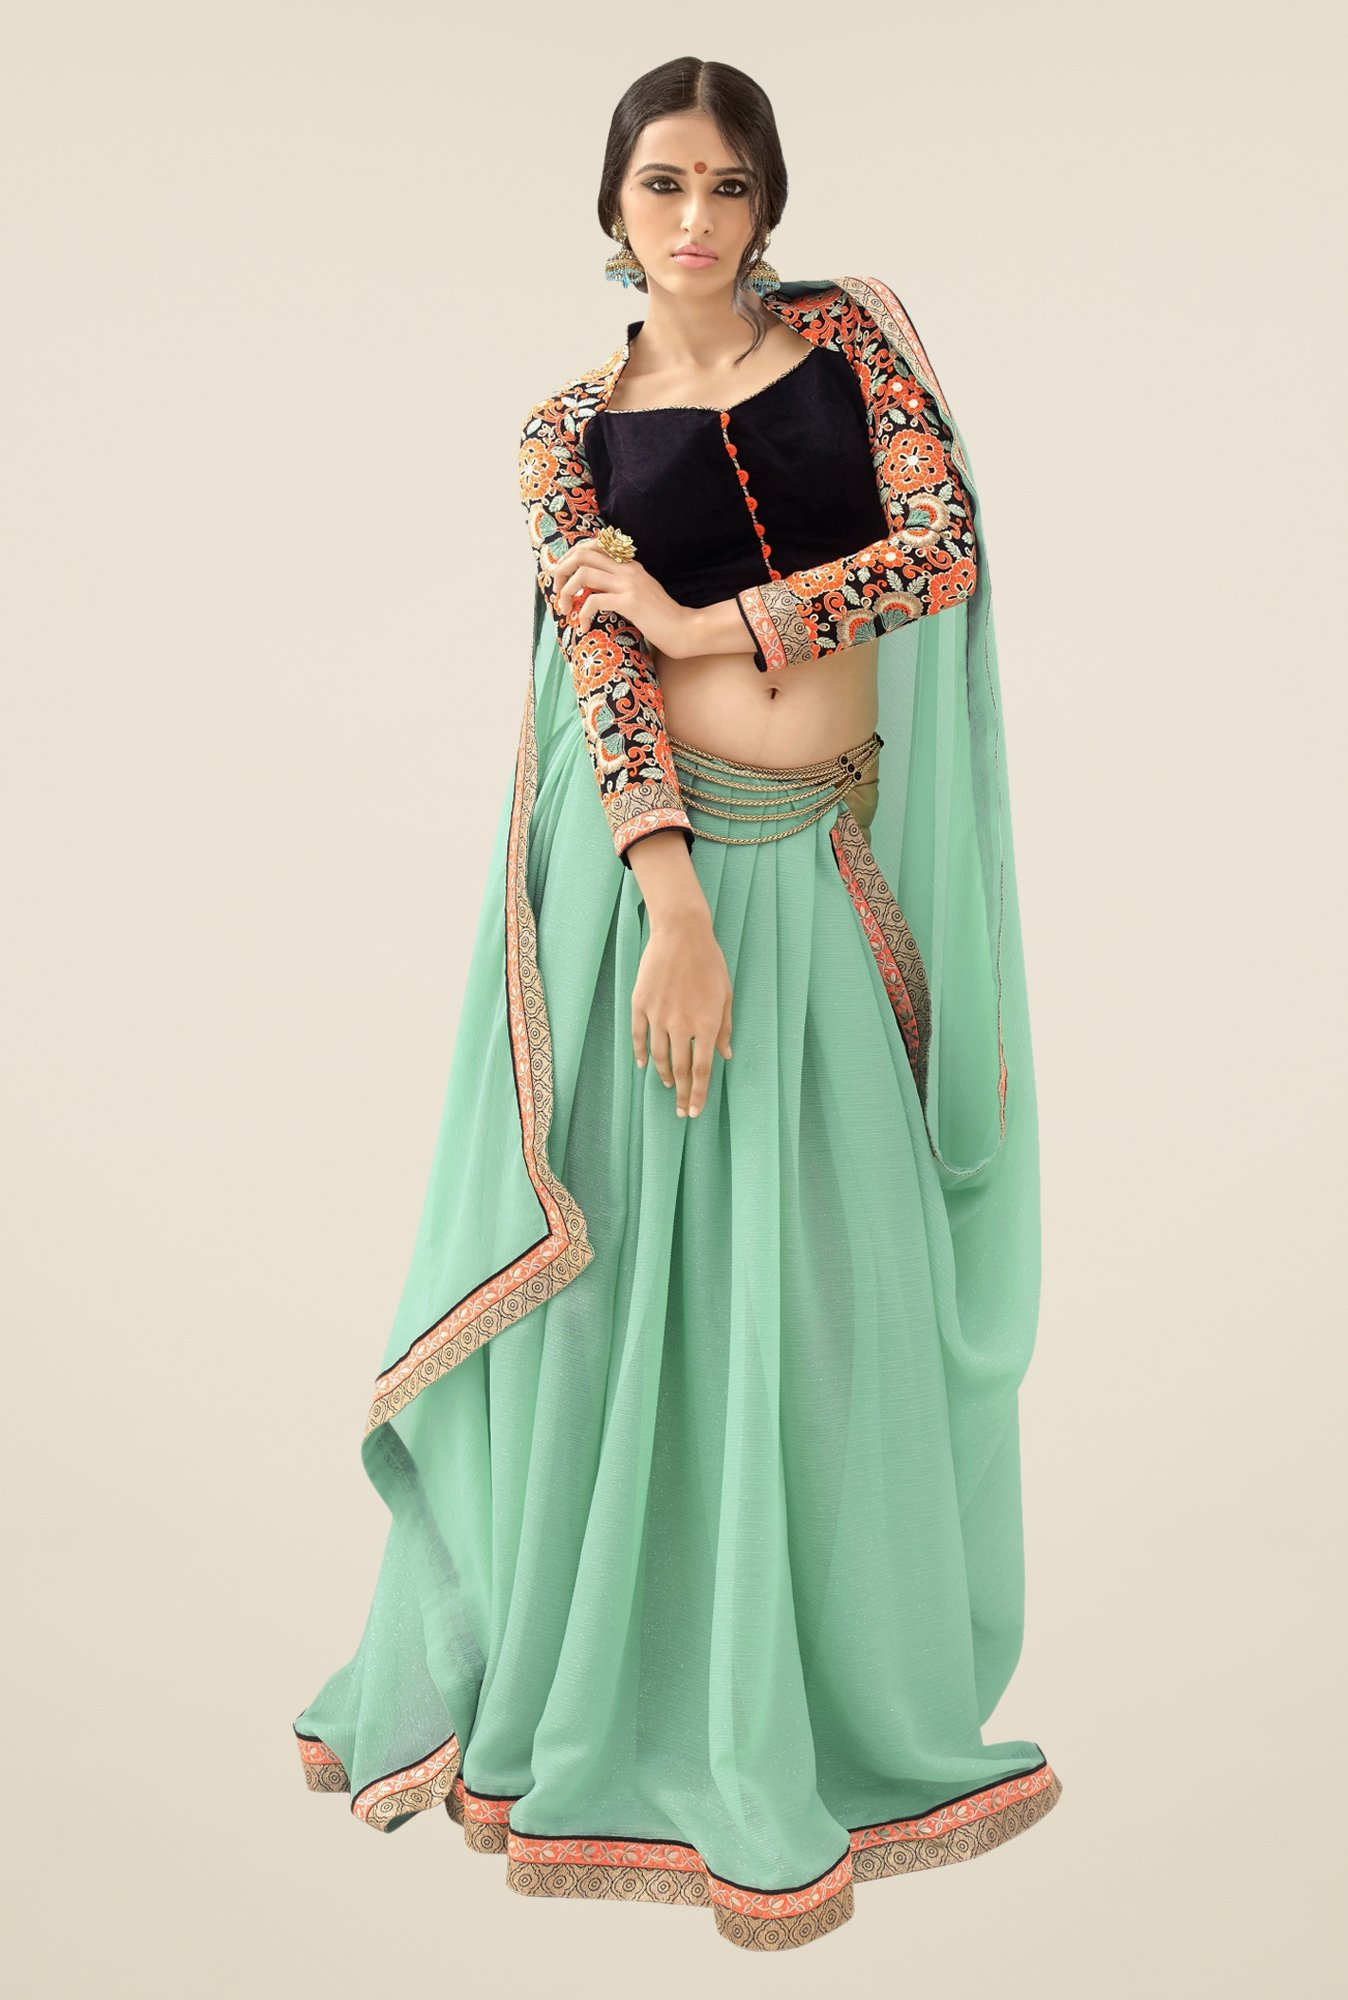 Triveni Green Solid Shimmer & Faux Georgette Saree